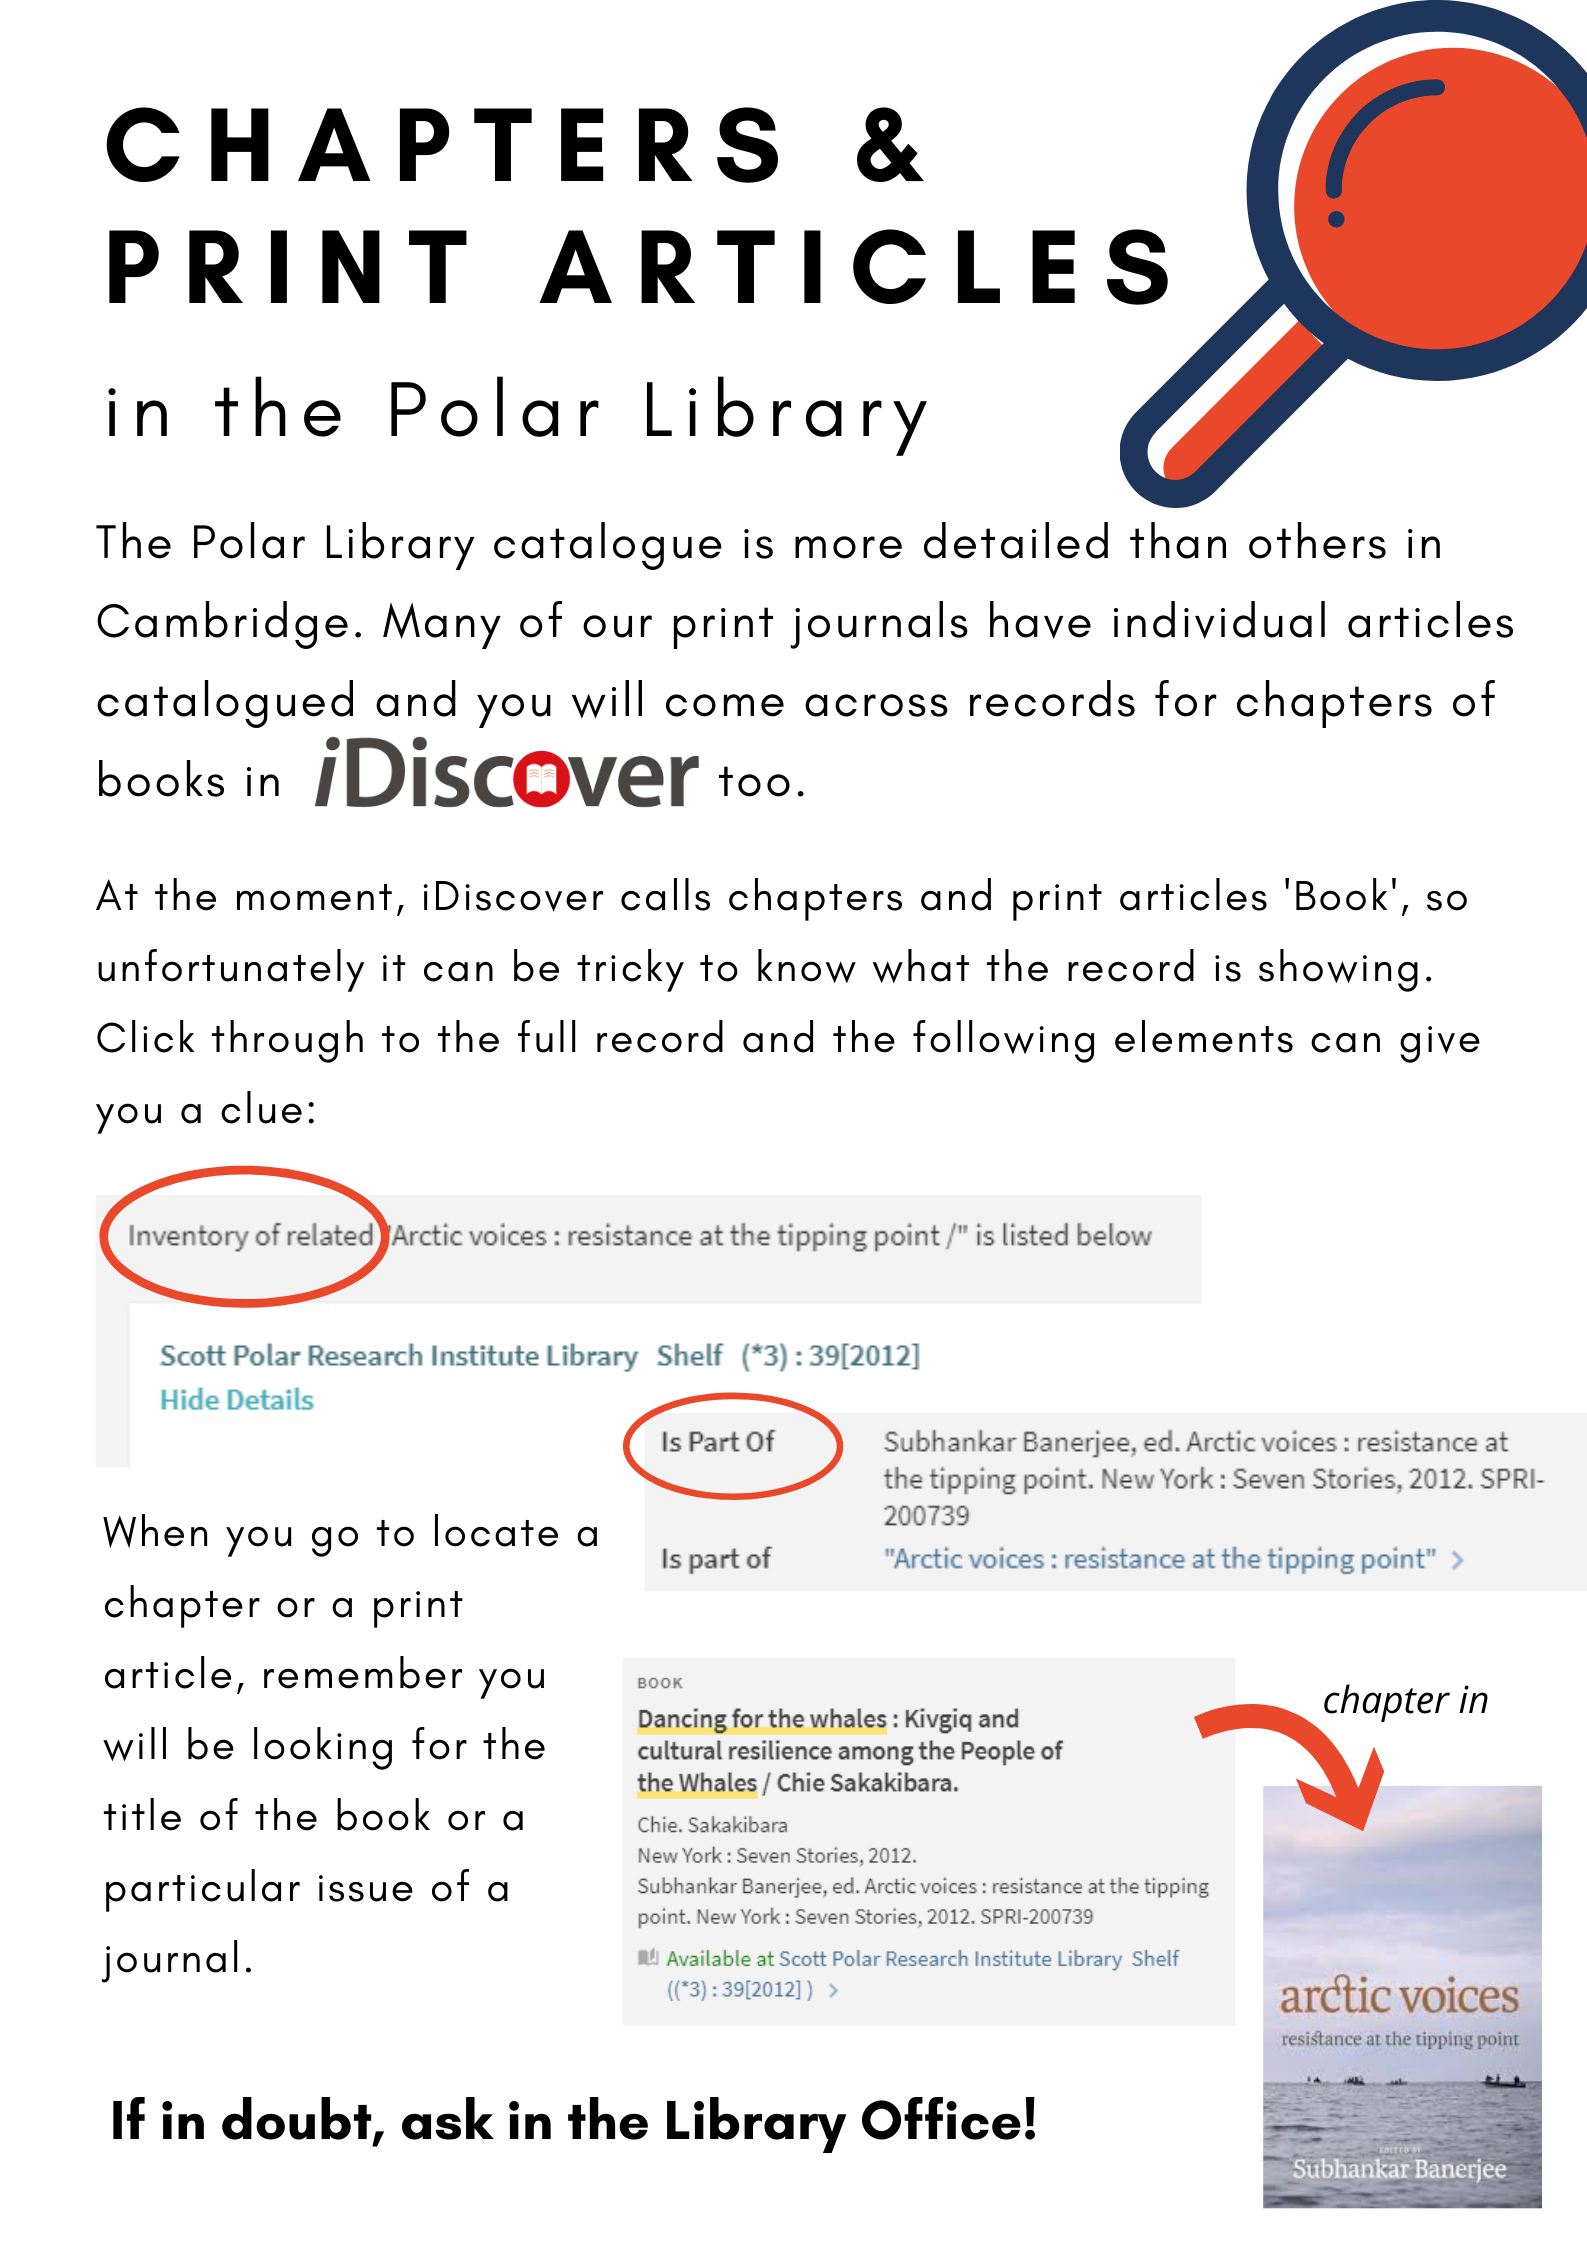 Poster on finding book chapters and print articles in the Polar Library